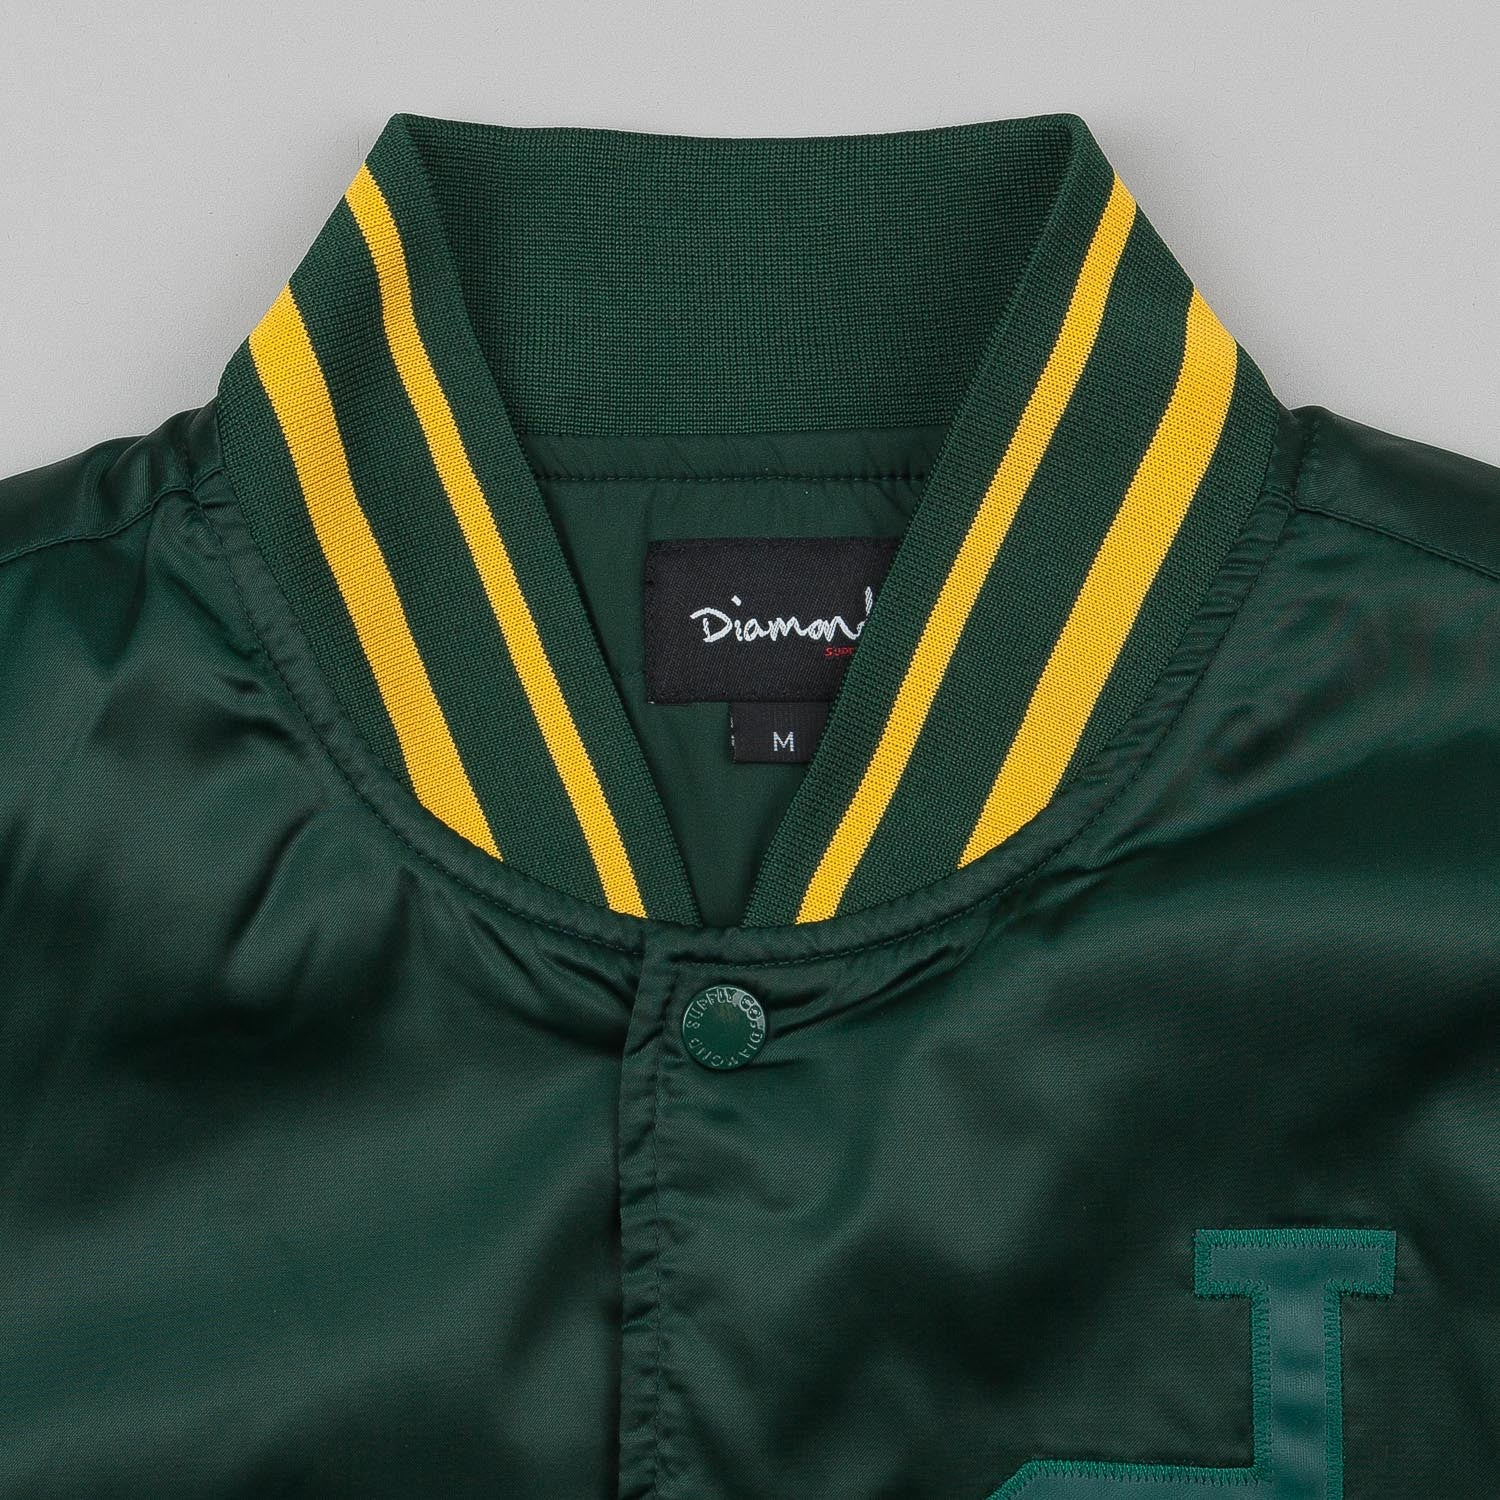 Diamond Un-Polo Team Jacket Green